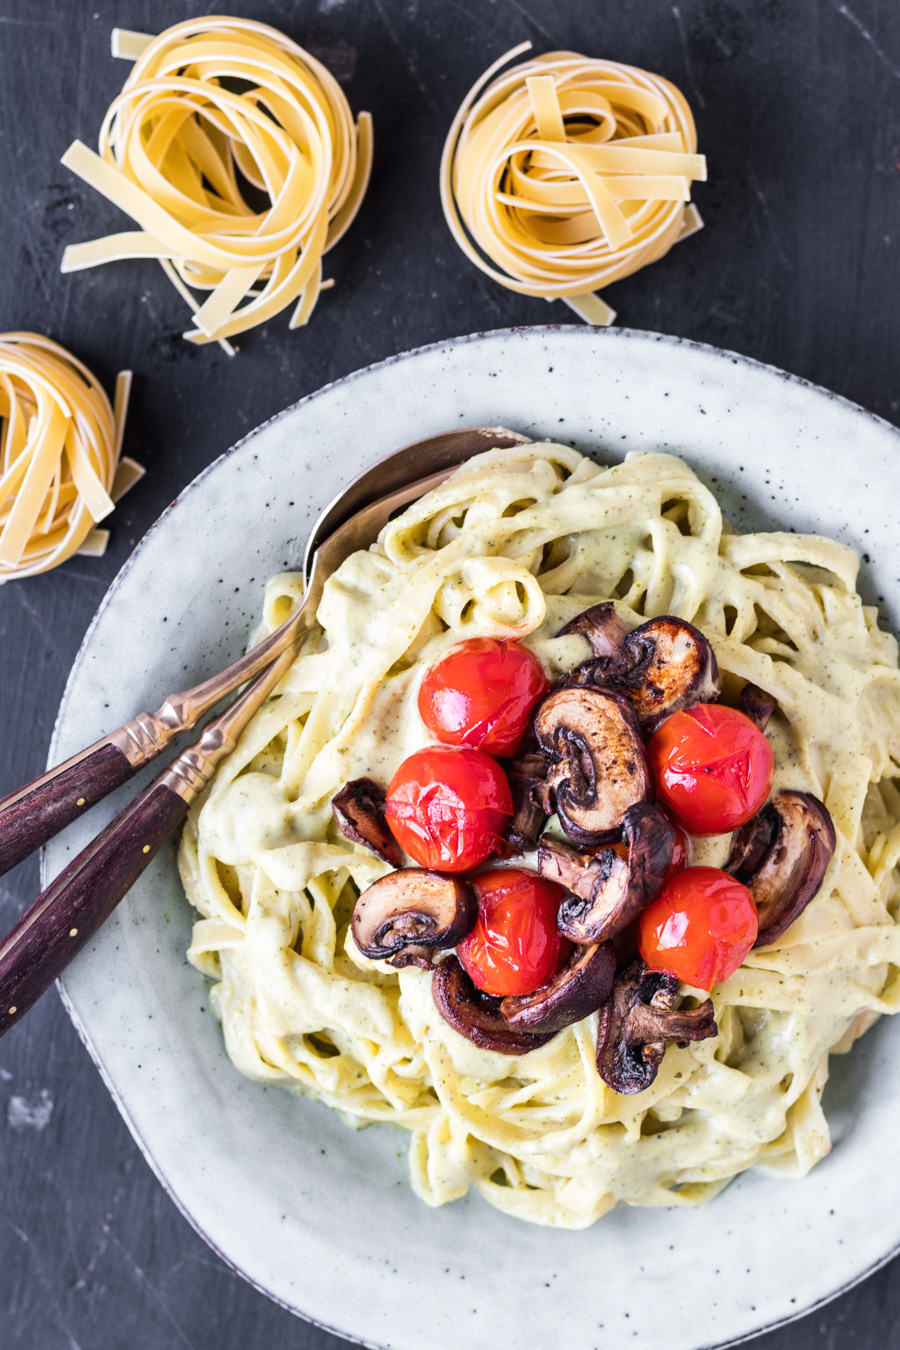 Tagliatelle In Vegan Garlic Courgette Cream Sauce With Tender Chestnut Mushrooms & Roasted Cherry Tomatoes